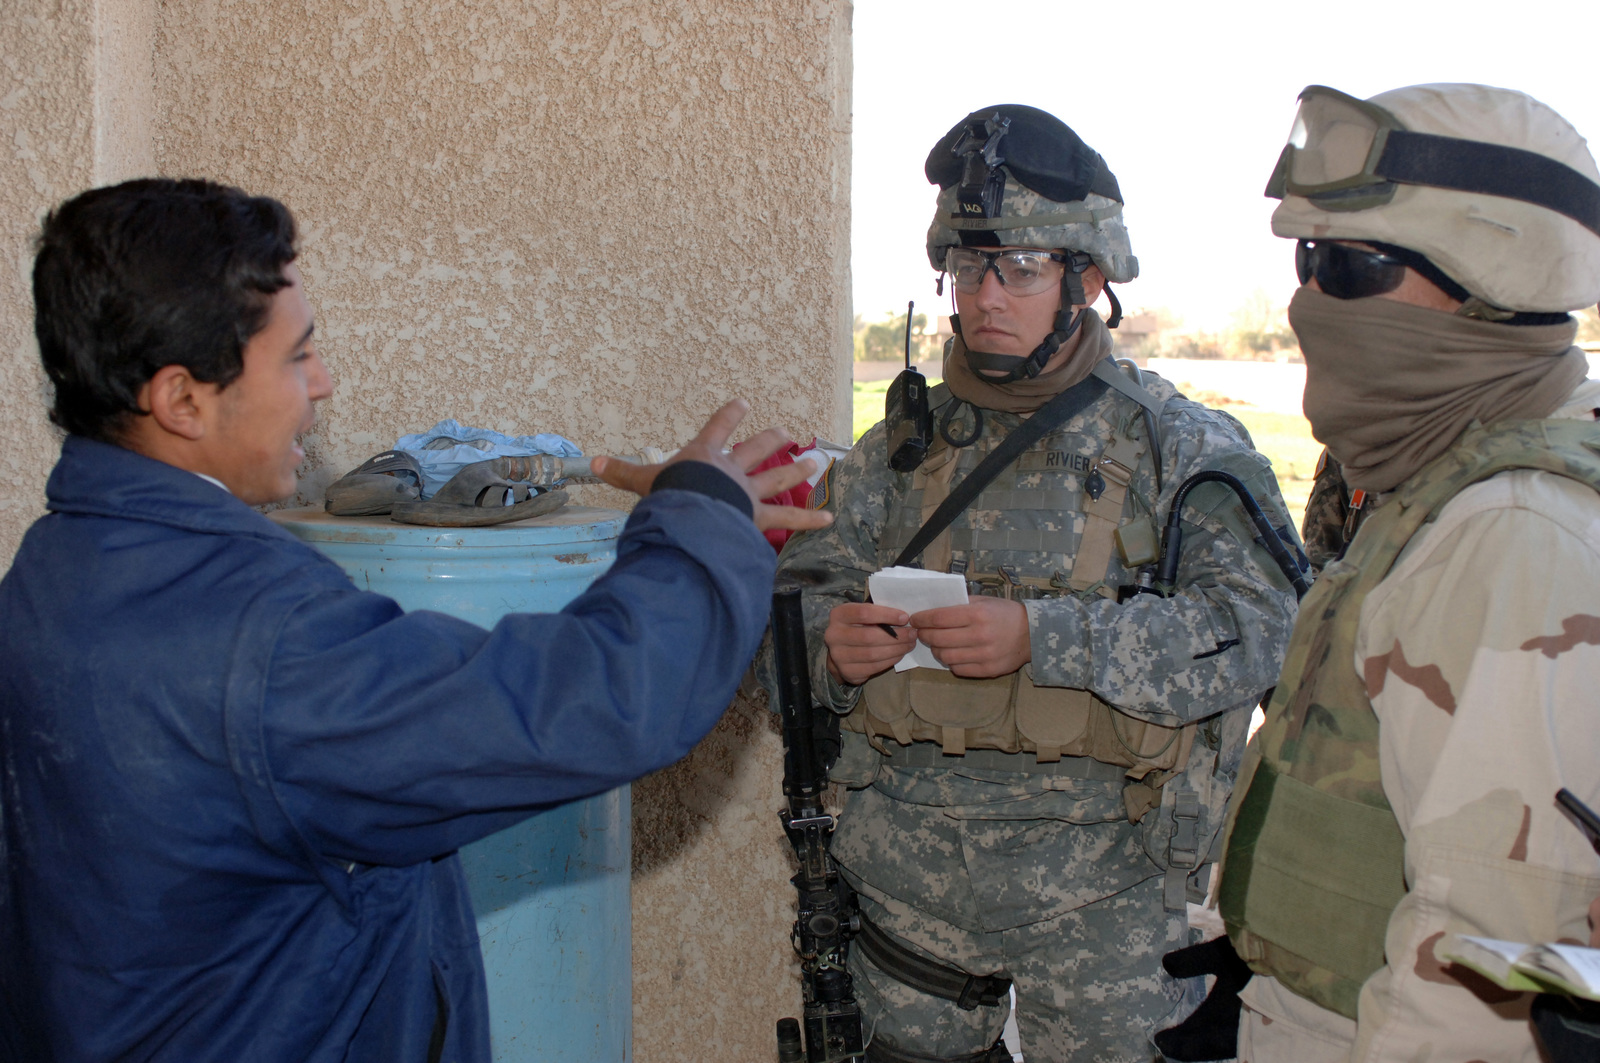 On Dec. 30, 2005 soldiers from Bravo Company, 2nd Bn, 502nd INF conducted Search and Sweep Operations in the Village of Shakaria, Iraq. CAPT. Andre Rivier, B Company Commander spoke with and greeted locales as he and his troops conducted operations in the Village.(U.S. Army photo by STAFF SGT. Kevin L. Moses Sr) (Released)